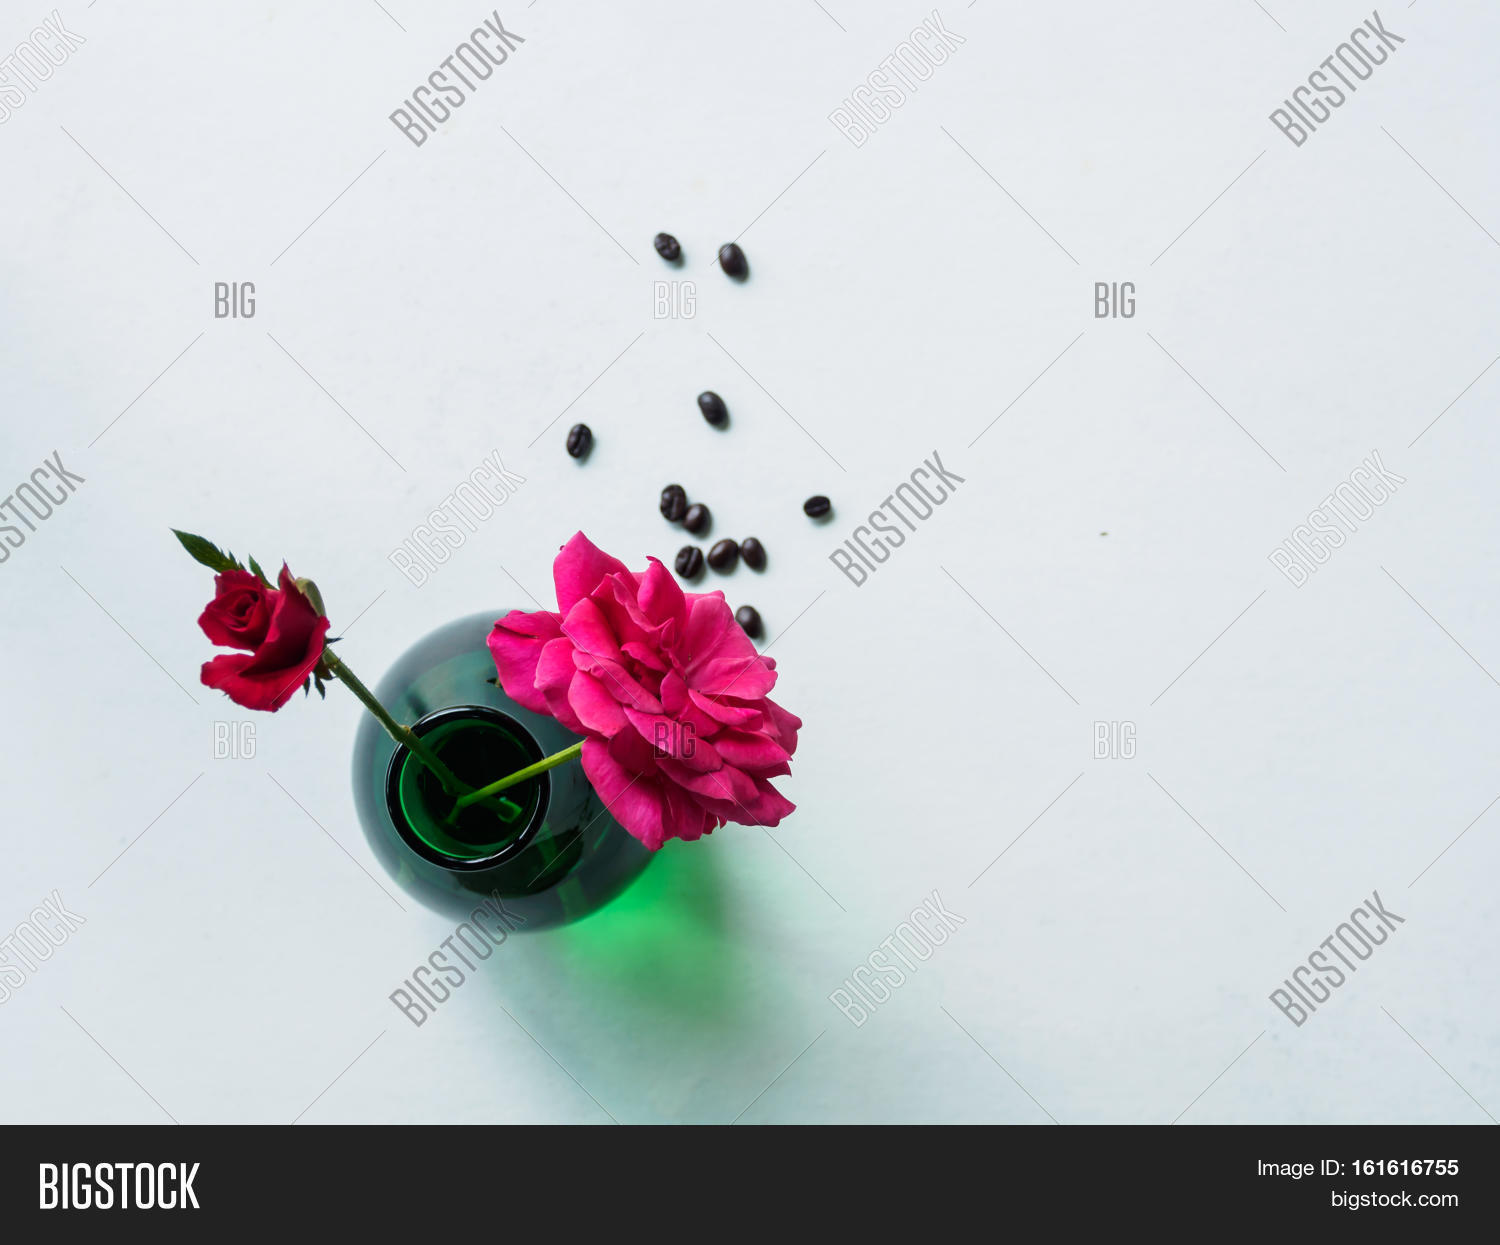 Top View Bueatiful Image & Photo (Free Trial) | Bigstock Flower Vase Top View on umbrella top view, desk top view, tree top view, couch top view, table top view, plate top view, sculpture top view, rug top view, bedroom top view, spoon top view, apple top view, box top view, plant top view, rose top view, stool top view,